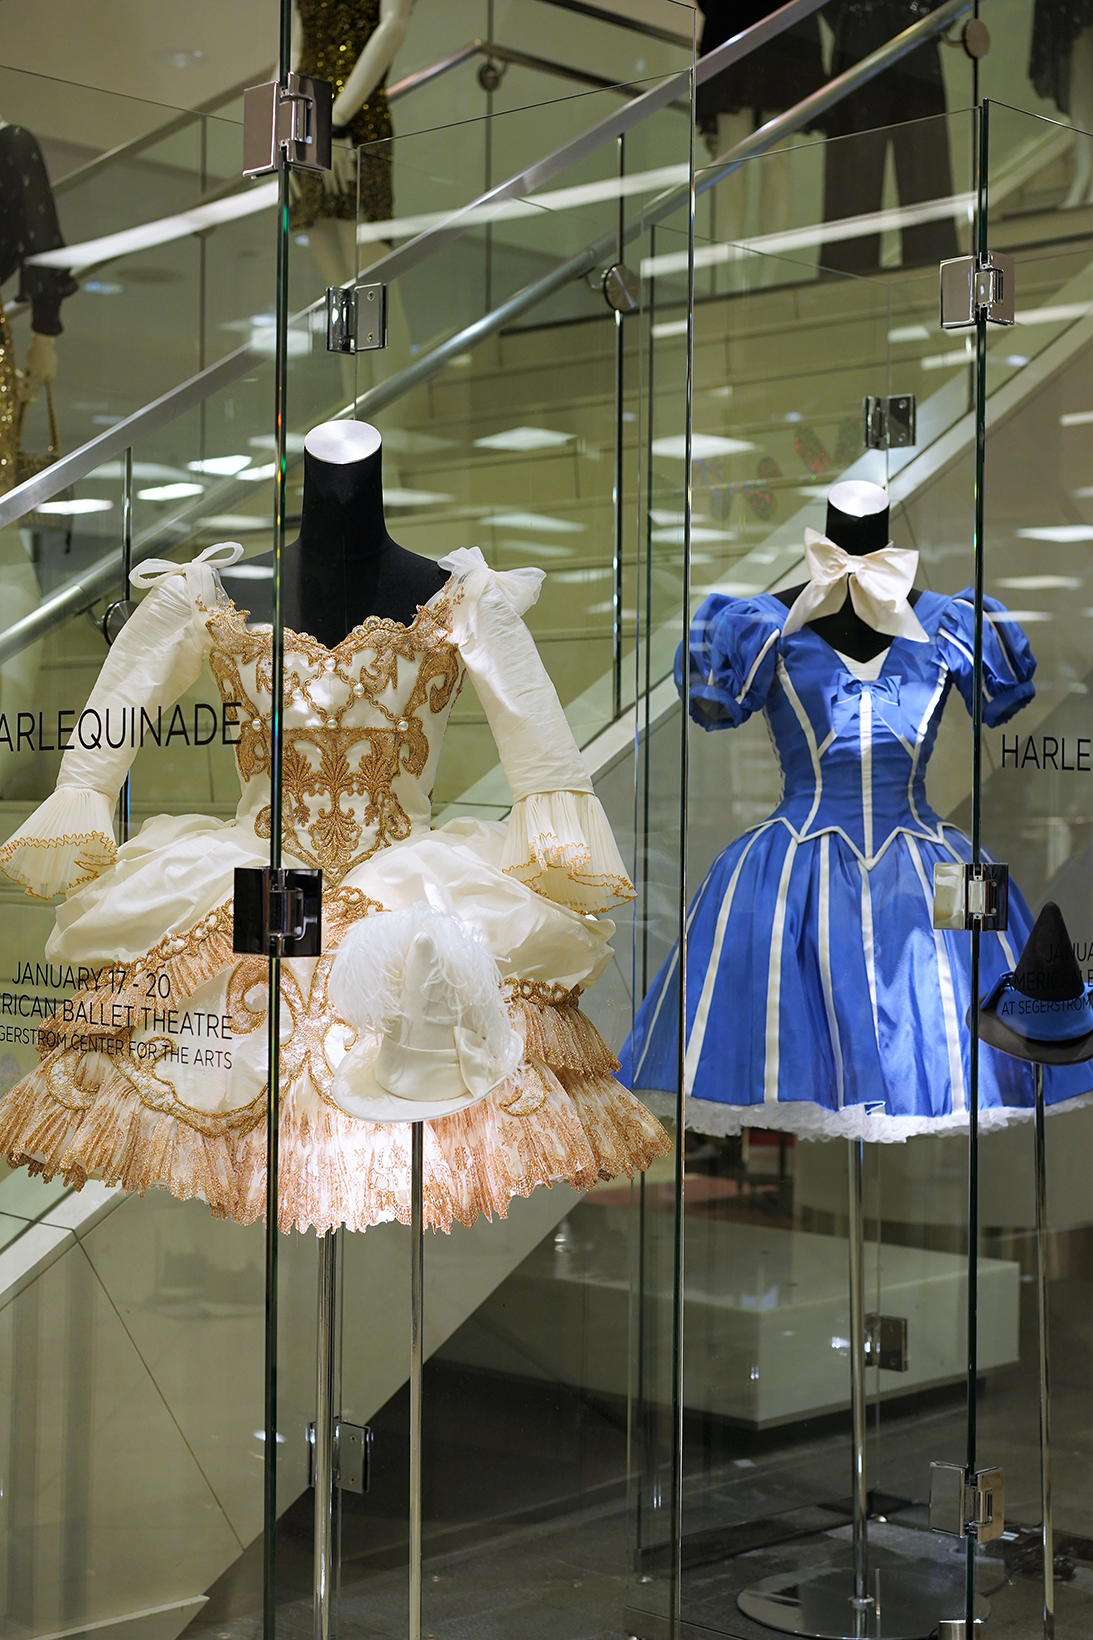 American Ballet Theatre Harlequinade Costumes on Display at Bloomingdales Fashion Island